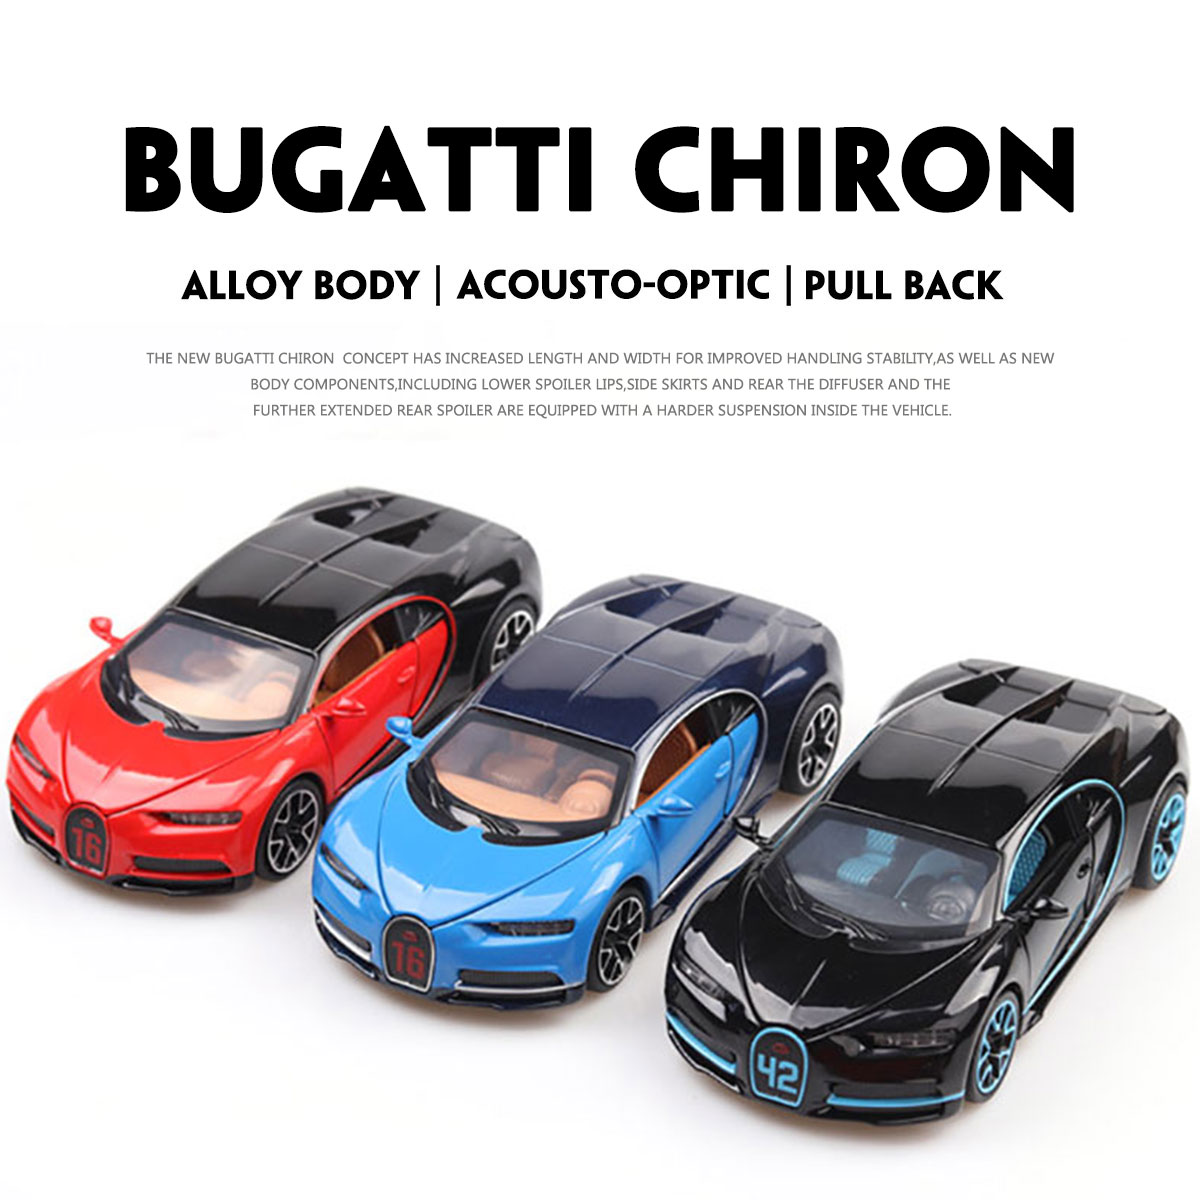 1:32 Alloy Vehicle Car Toy Car Model Pull Back Toy For Children Pull Back Models Sound Light Boy Kids Gifts For Bugatti Chiron